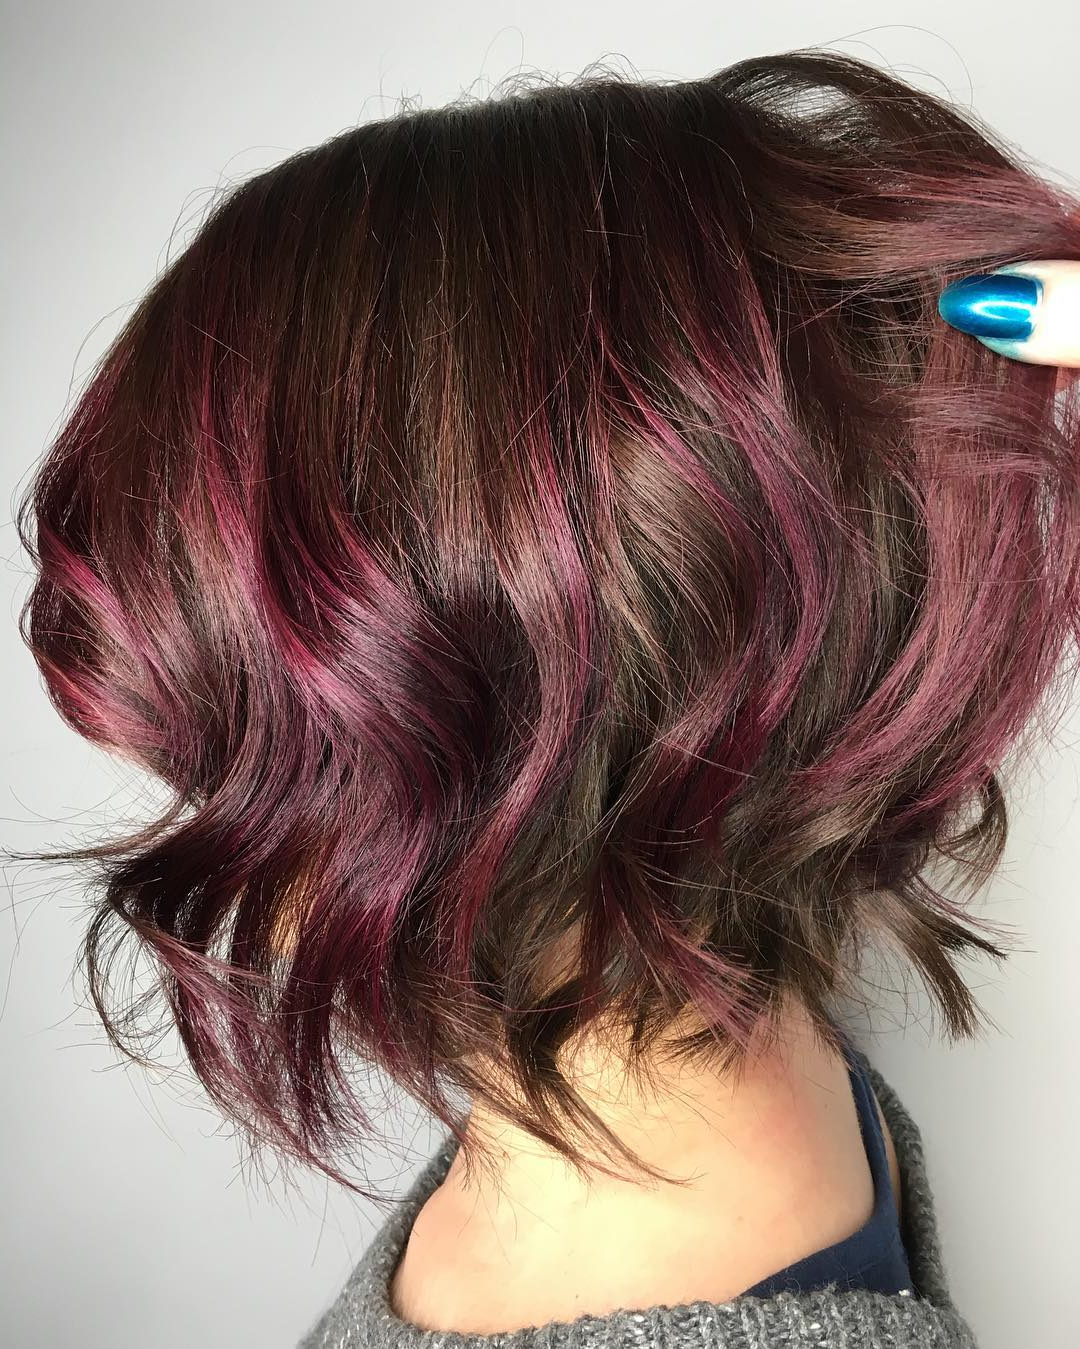 38 Super Cute Ways To Curl Your Bob – Popular Haircuts For Women 2017 Regarding Cute Curly Bob Hairstyles (View 7 of 25)